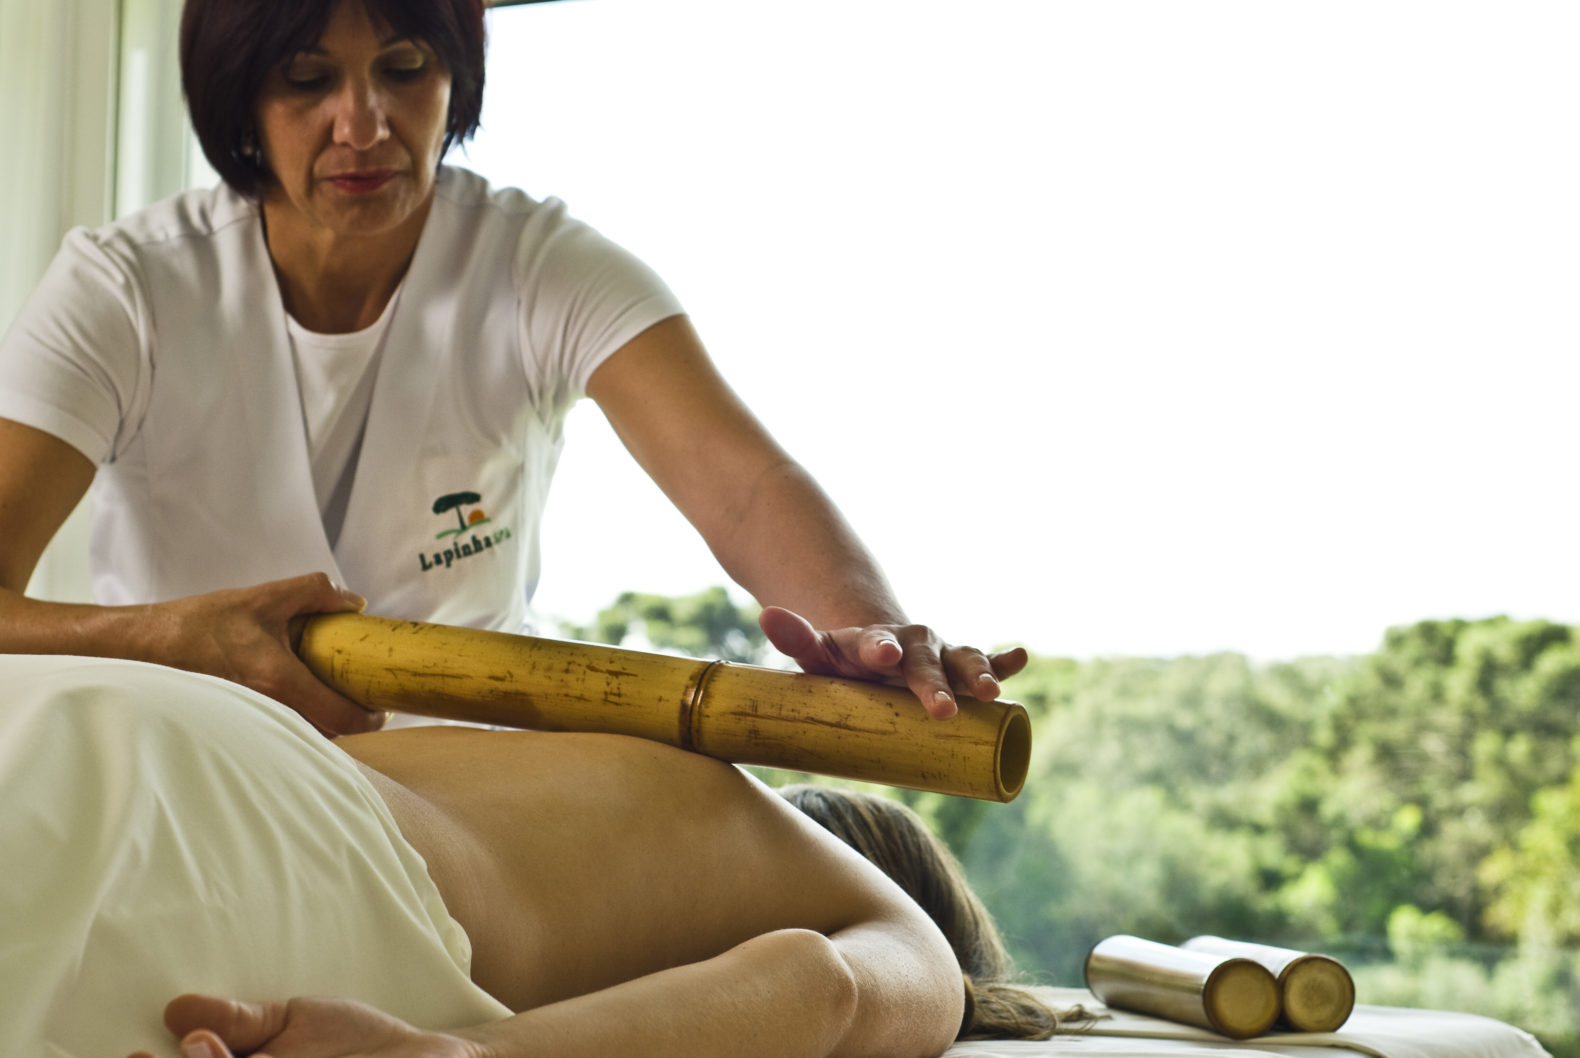 woman-traditional-spa-treatment-massage-wood-stick-bamboo-laphina-spa-brazil